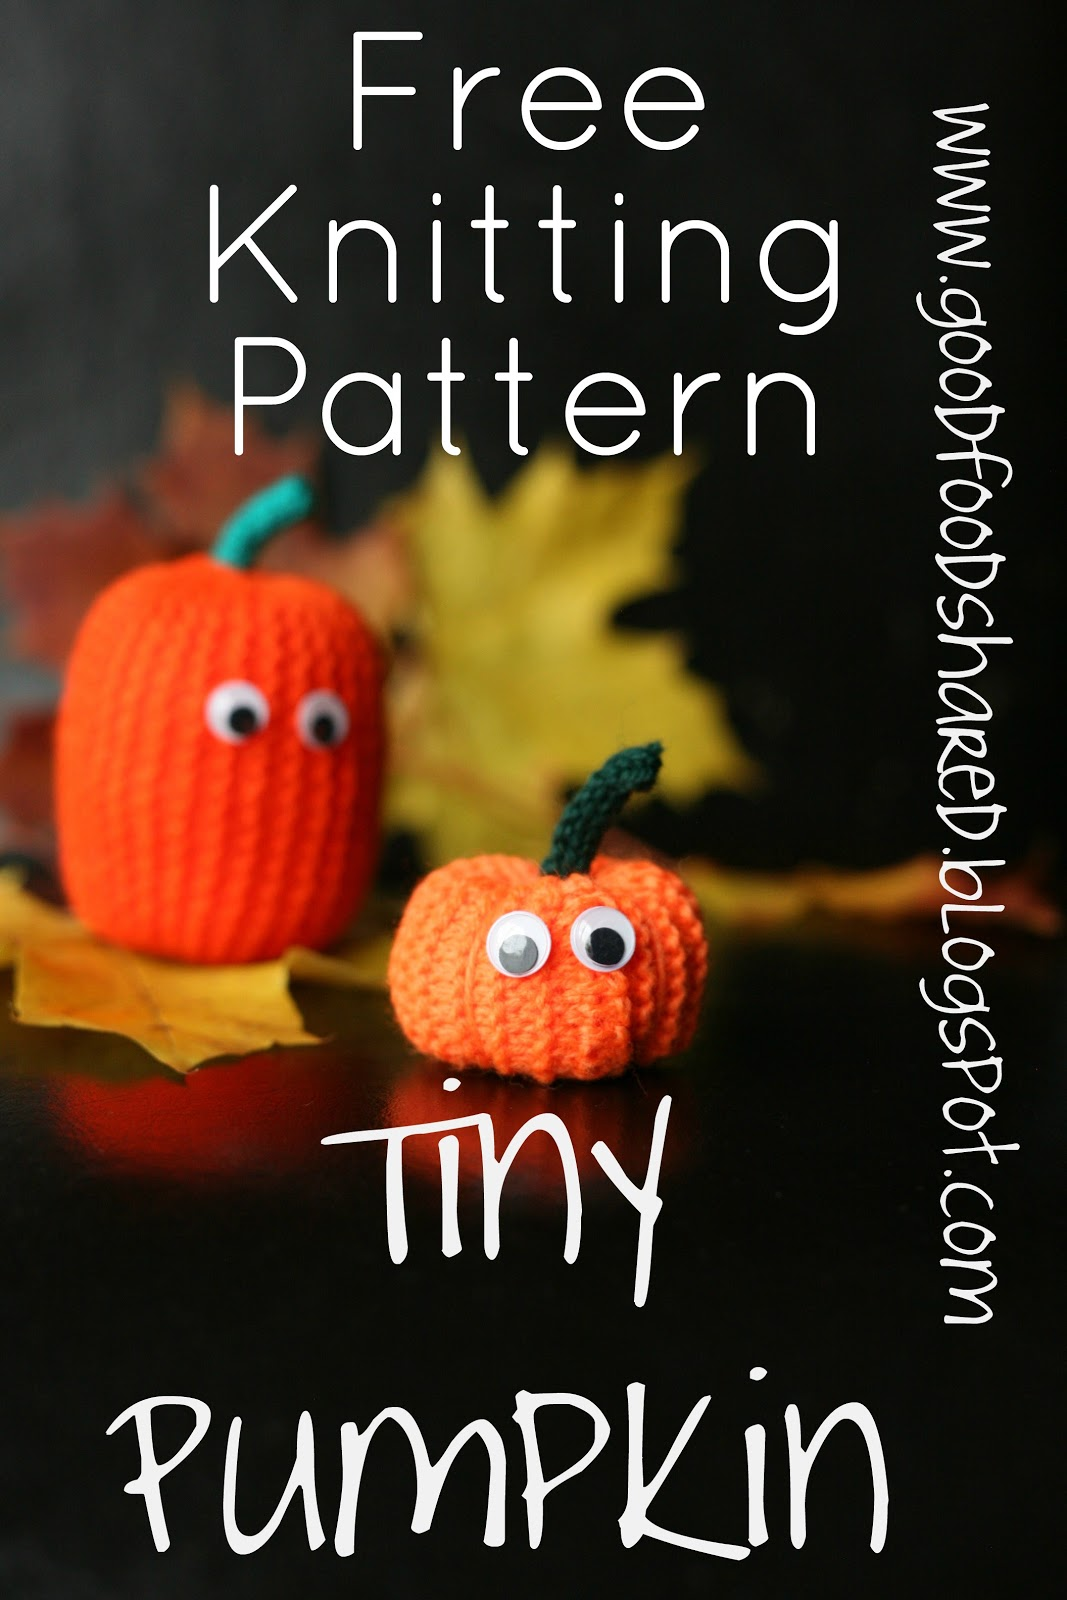 Free Knitting Patten, Tiny Knitted Pumpkins, for some last minute Hallowe'en fun. www.goodfoodshared.blogspot.com